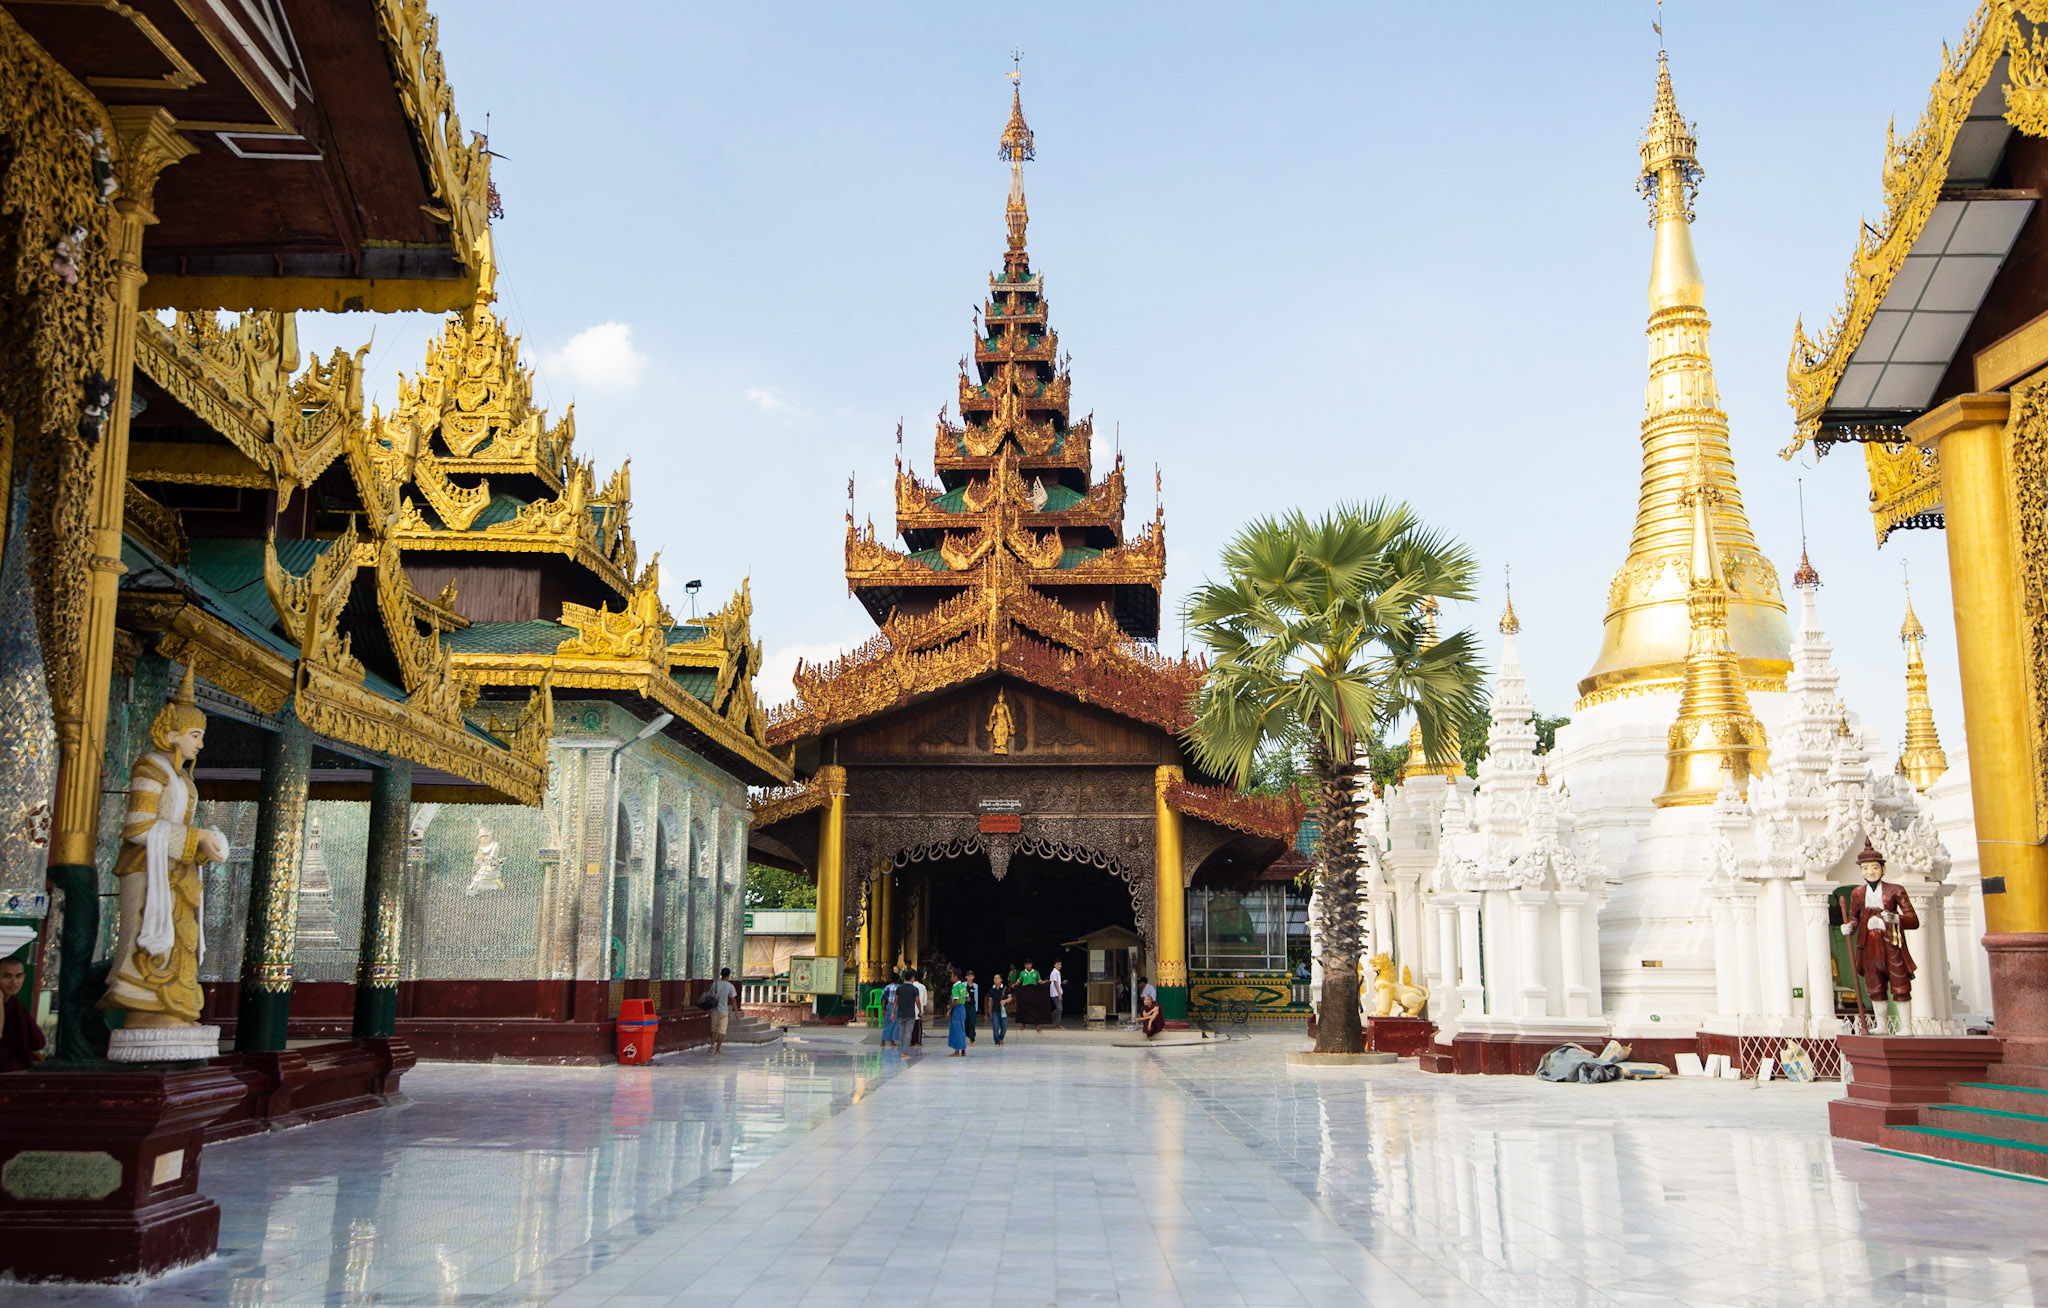 Shwedagon Pagoda's North Entrance (inside): Spot tour guides on the right